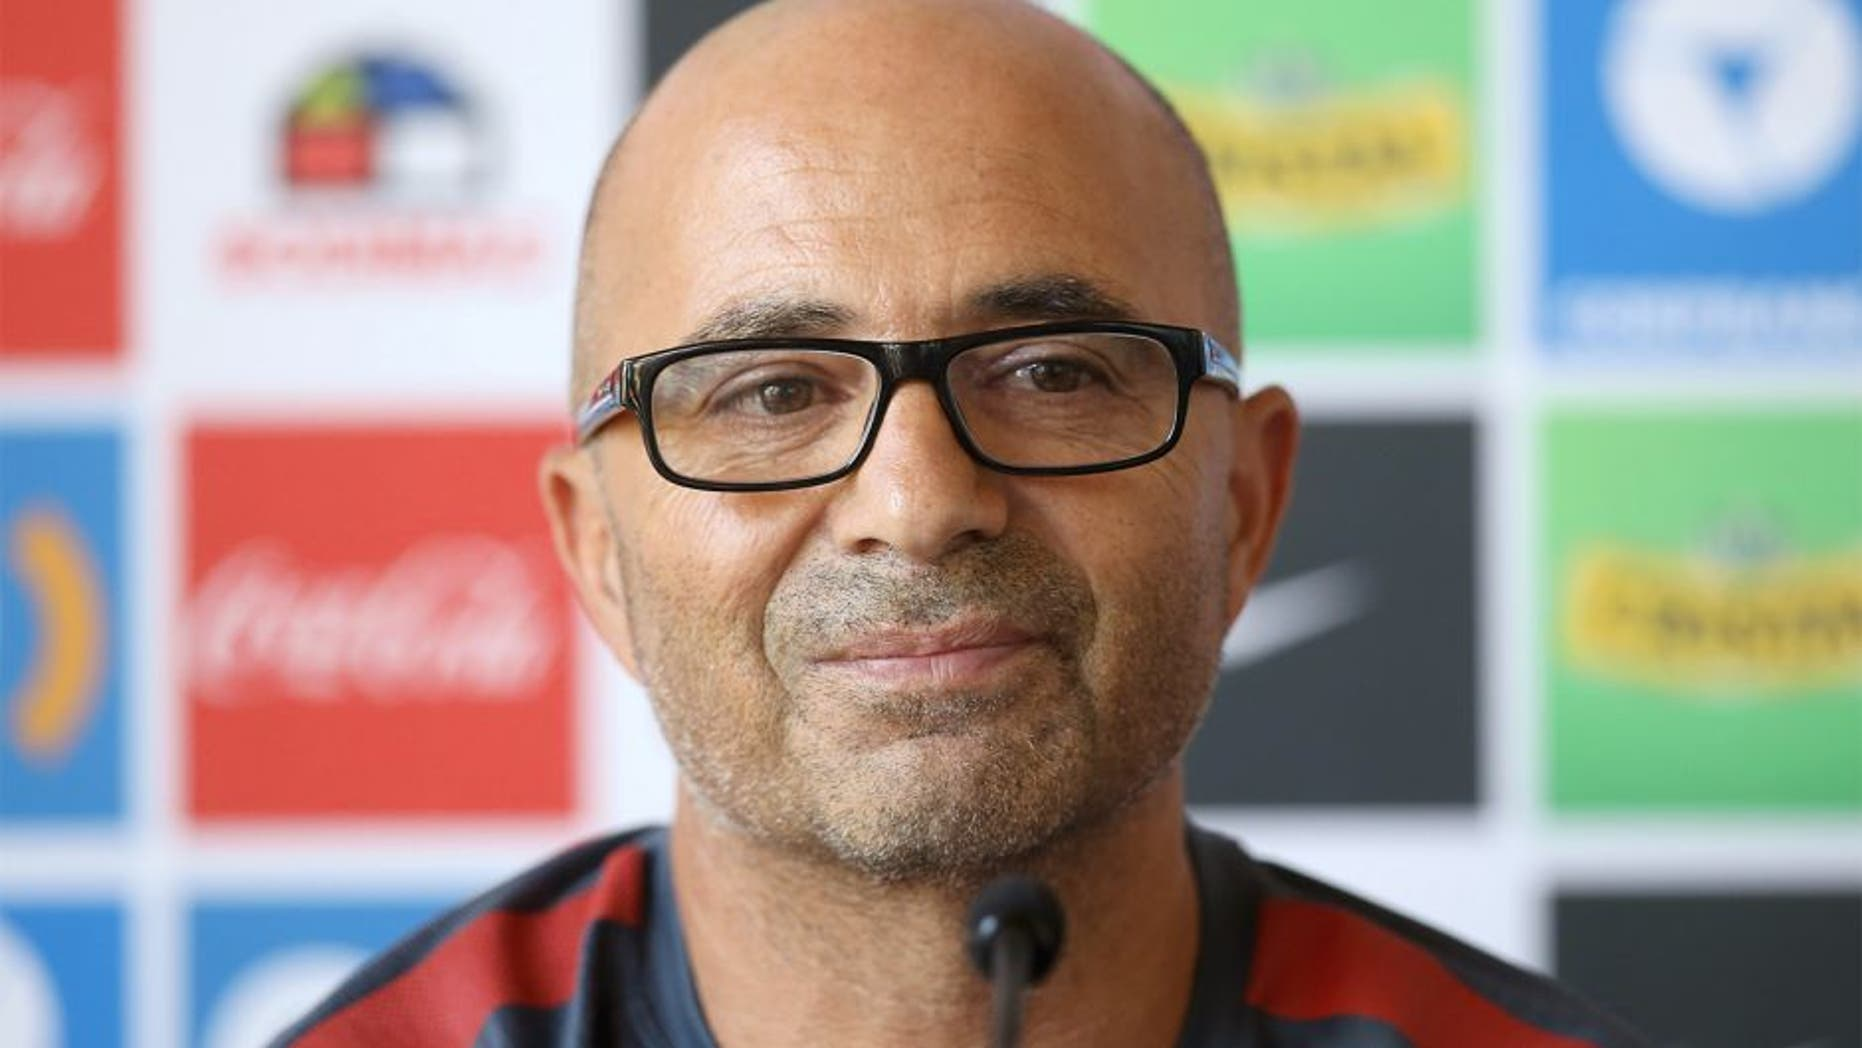 "Chilean national football team, Argentinian Jorge Sampaoli, gestures as he speaks during a press conference in Santiago, Chile, on January 13, 2016. Chile coach Jorge Sampoali appears on the verge of quitting six months after guiding La Roja to the Copa America, with the Argentine claiming he is being held ""hostage"" by the federation. AFP PHOTO/CLAUDIO REYES / AFP / Claudio Reyes (Photo credit should read CLAUDIO REYES/AFP/Getty Images)"